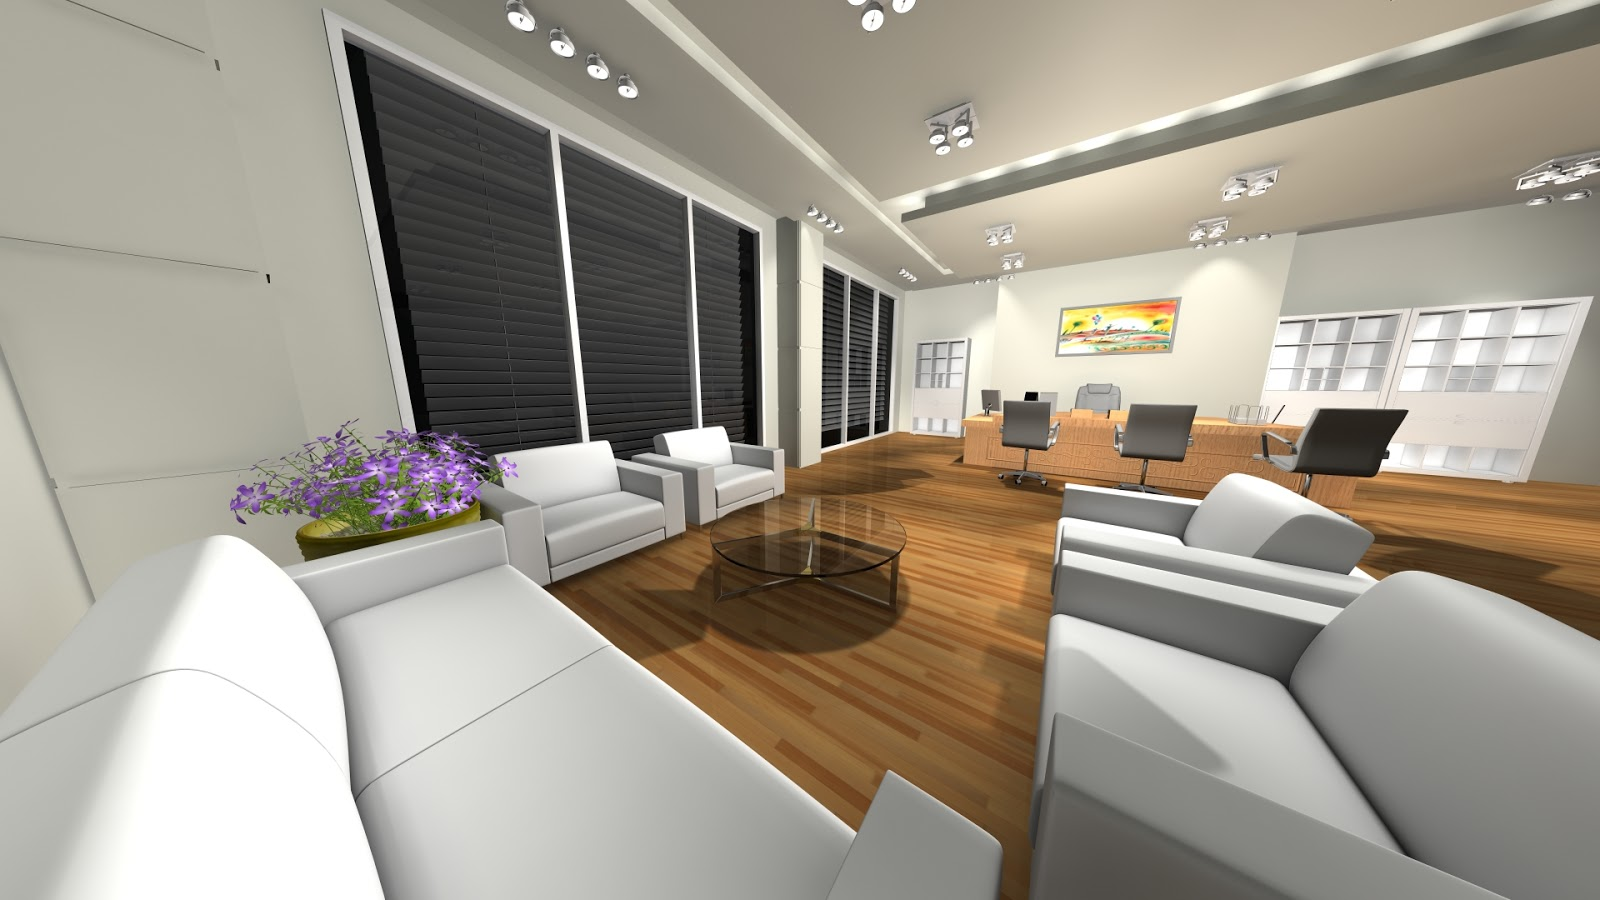 sajid designer office room 3d interior design 3ds max. Black Bedroom Furniture Sets. Home Design Ideas